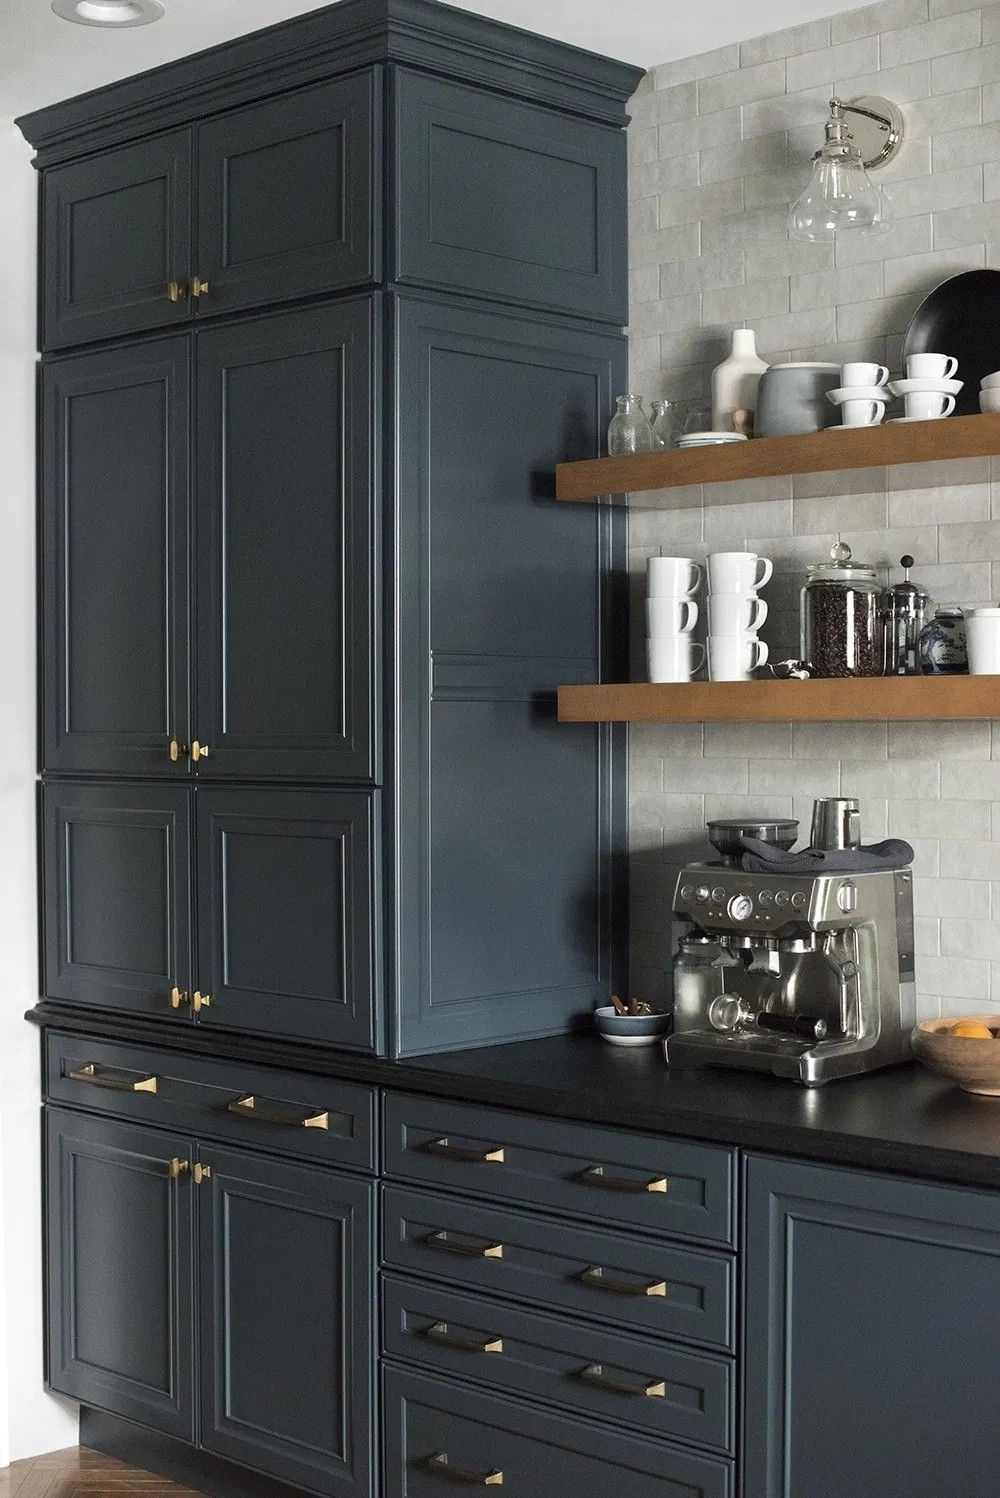 Moody Blue Cabinets And Black Counter Blue Kitchen Cabinets Kitchen Remodel Kitchen Interior